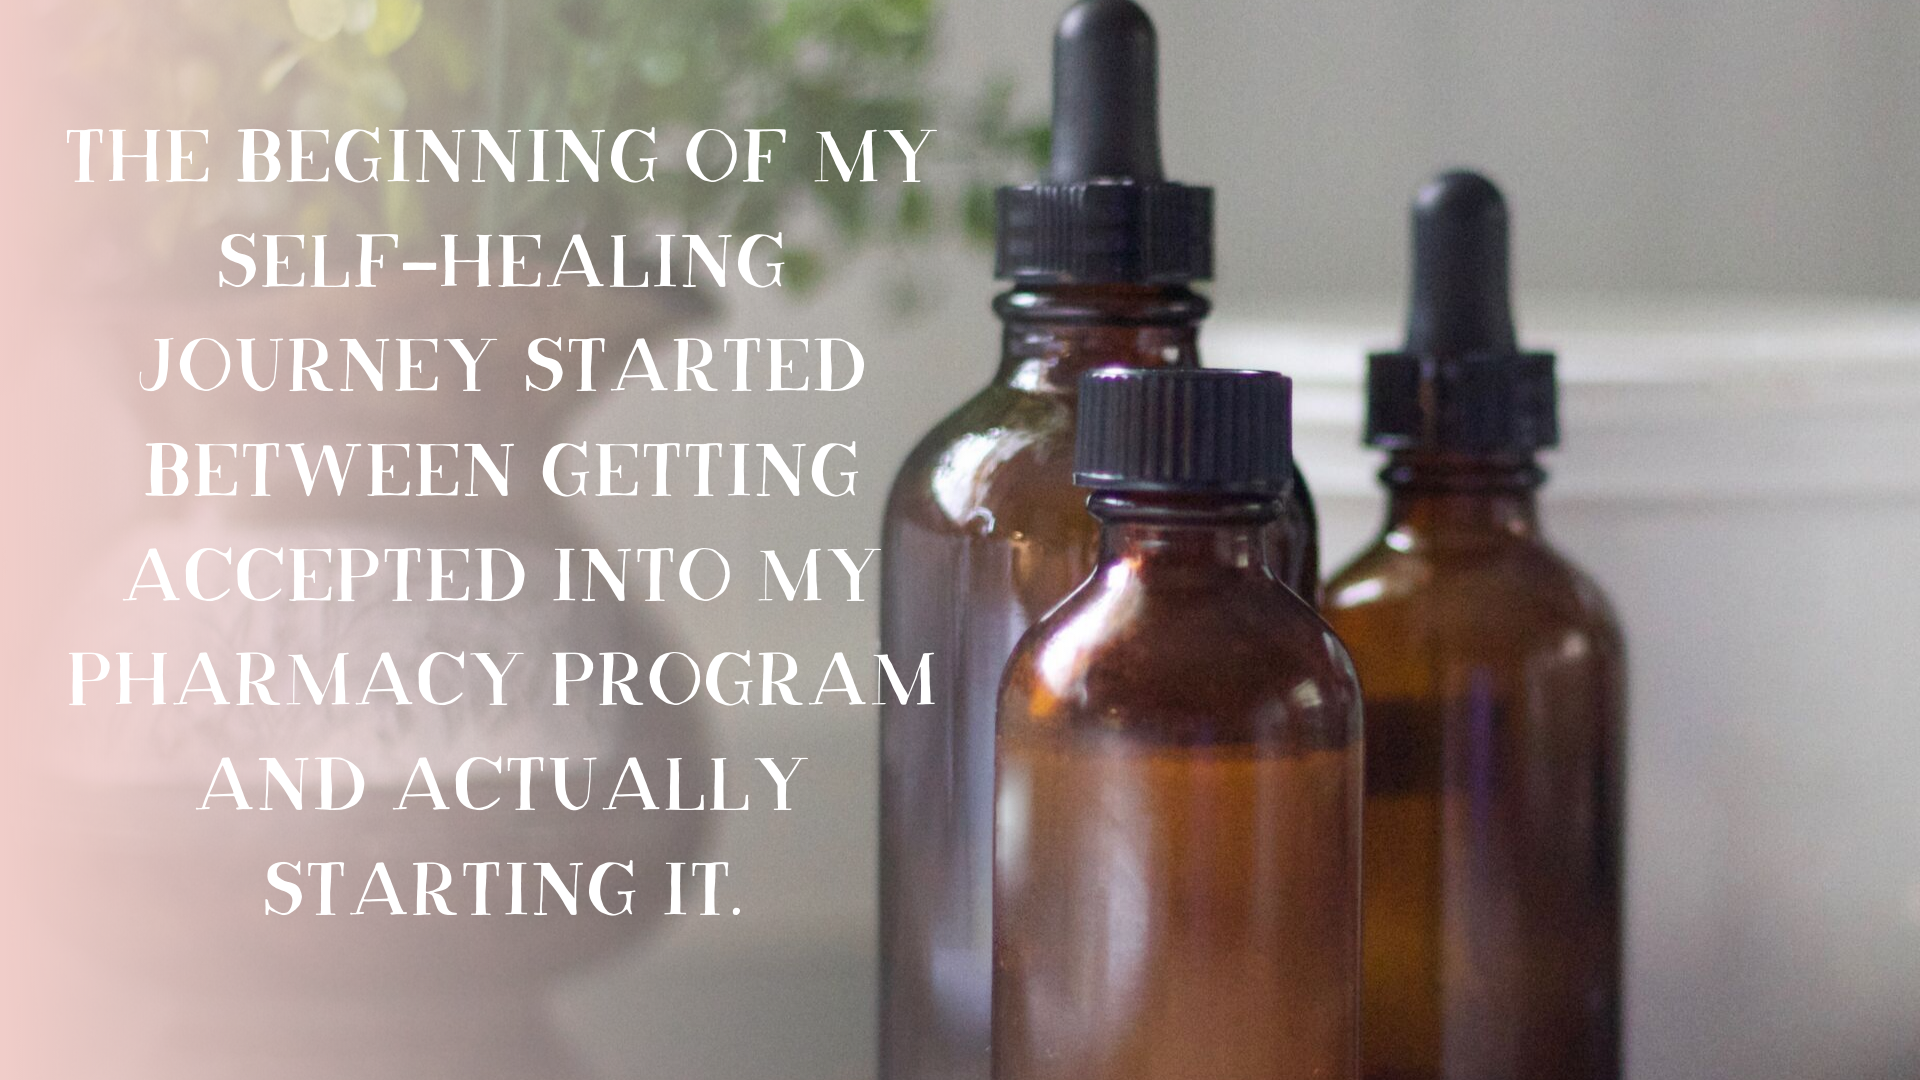 The beginningof my self-healing journey started between getting accepted into my pharmacy program and actually starting it..png